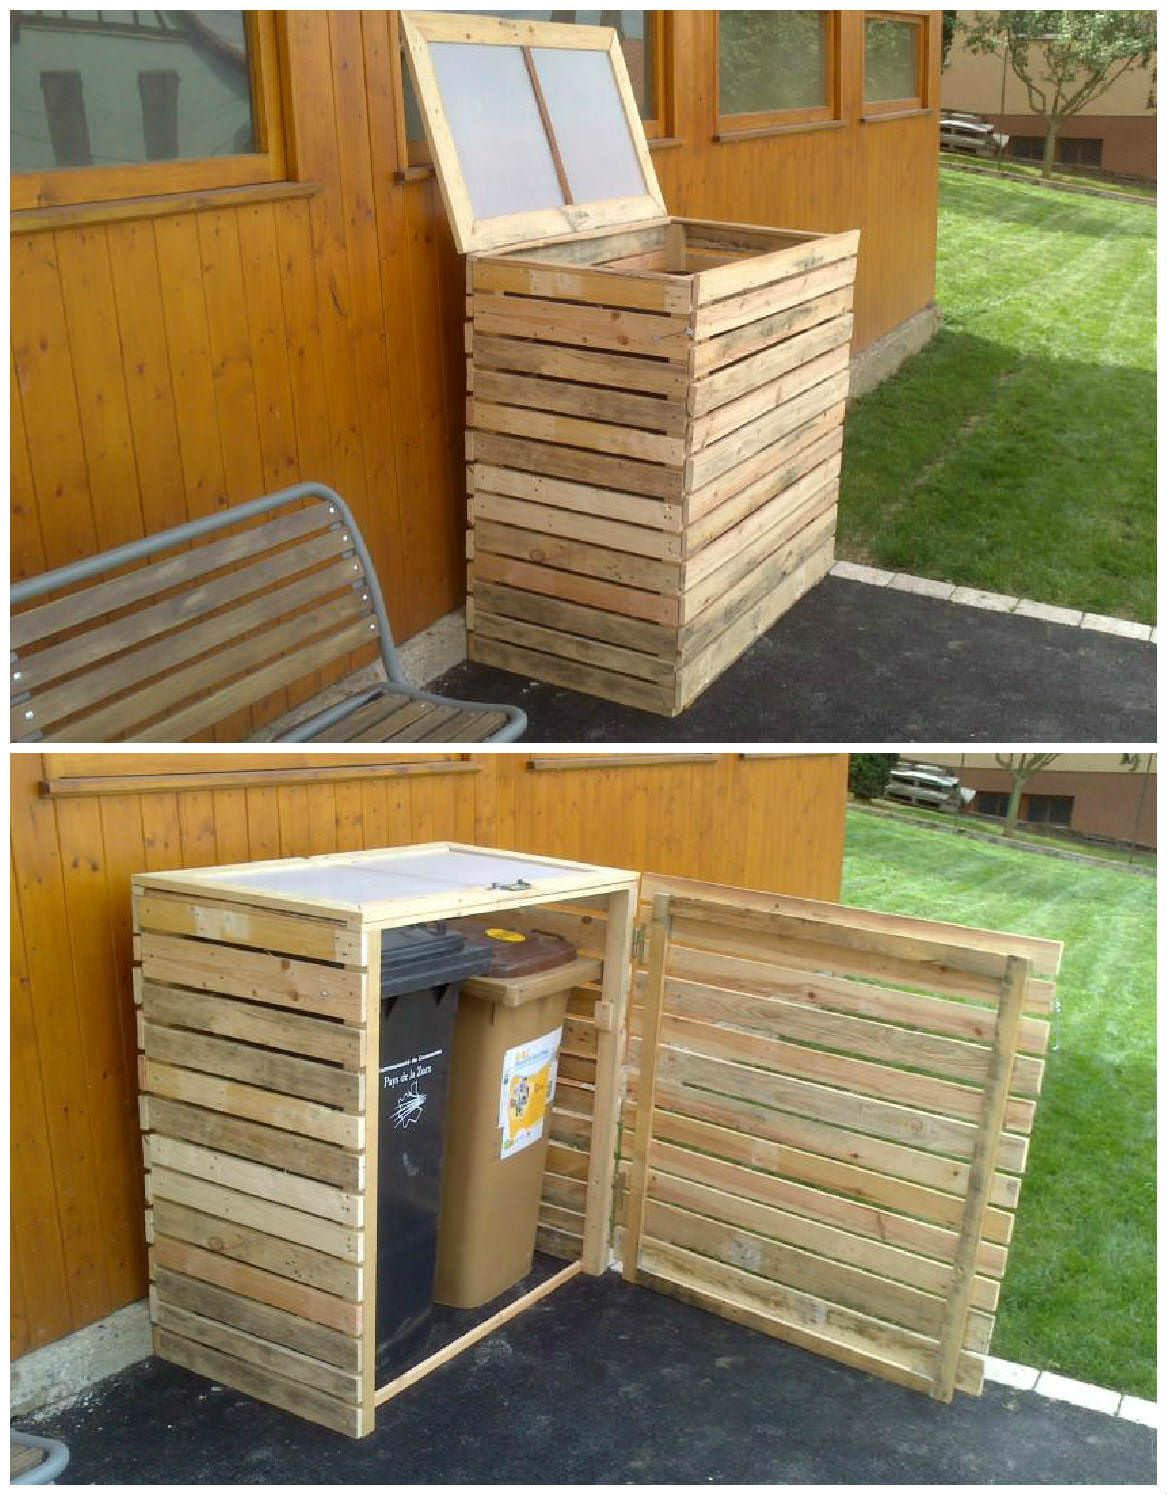 Pallet Garbage Bin Shelter | Pallets, Wooden pallet projects and ...